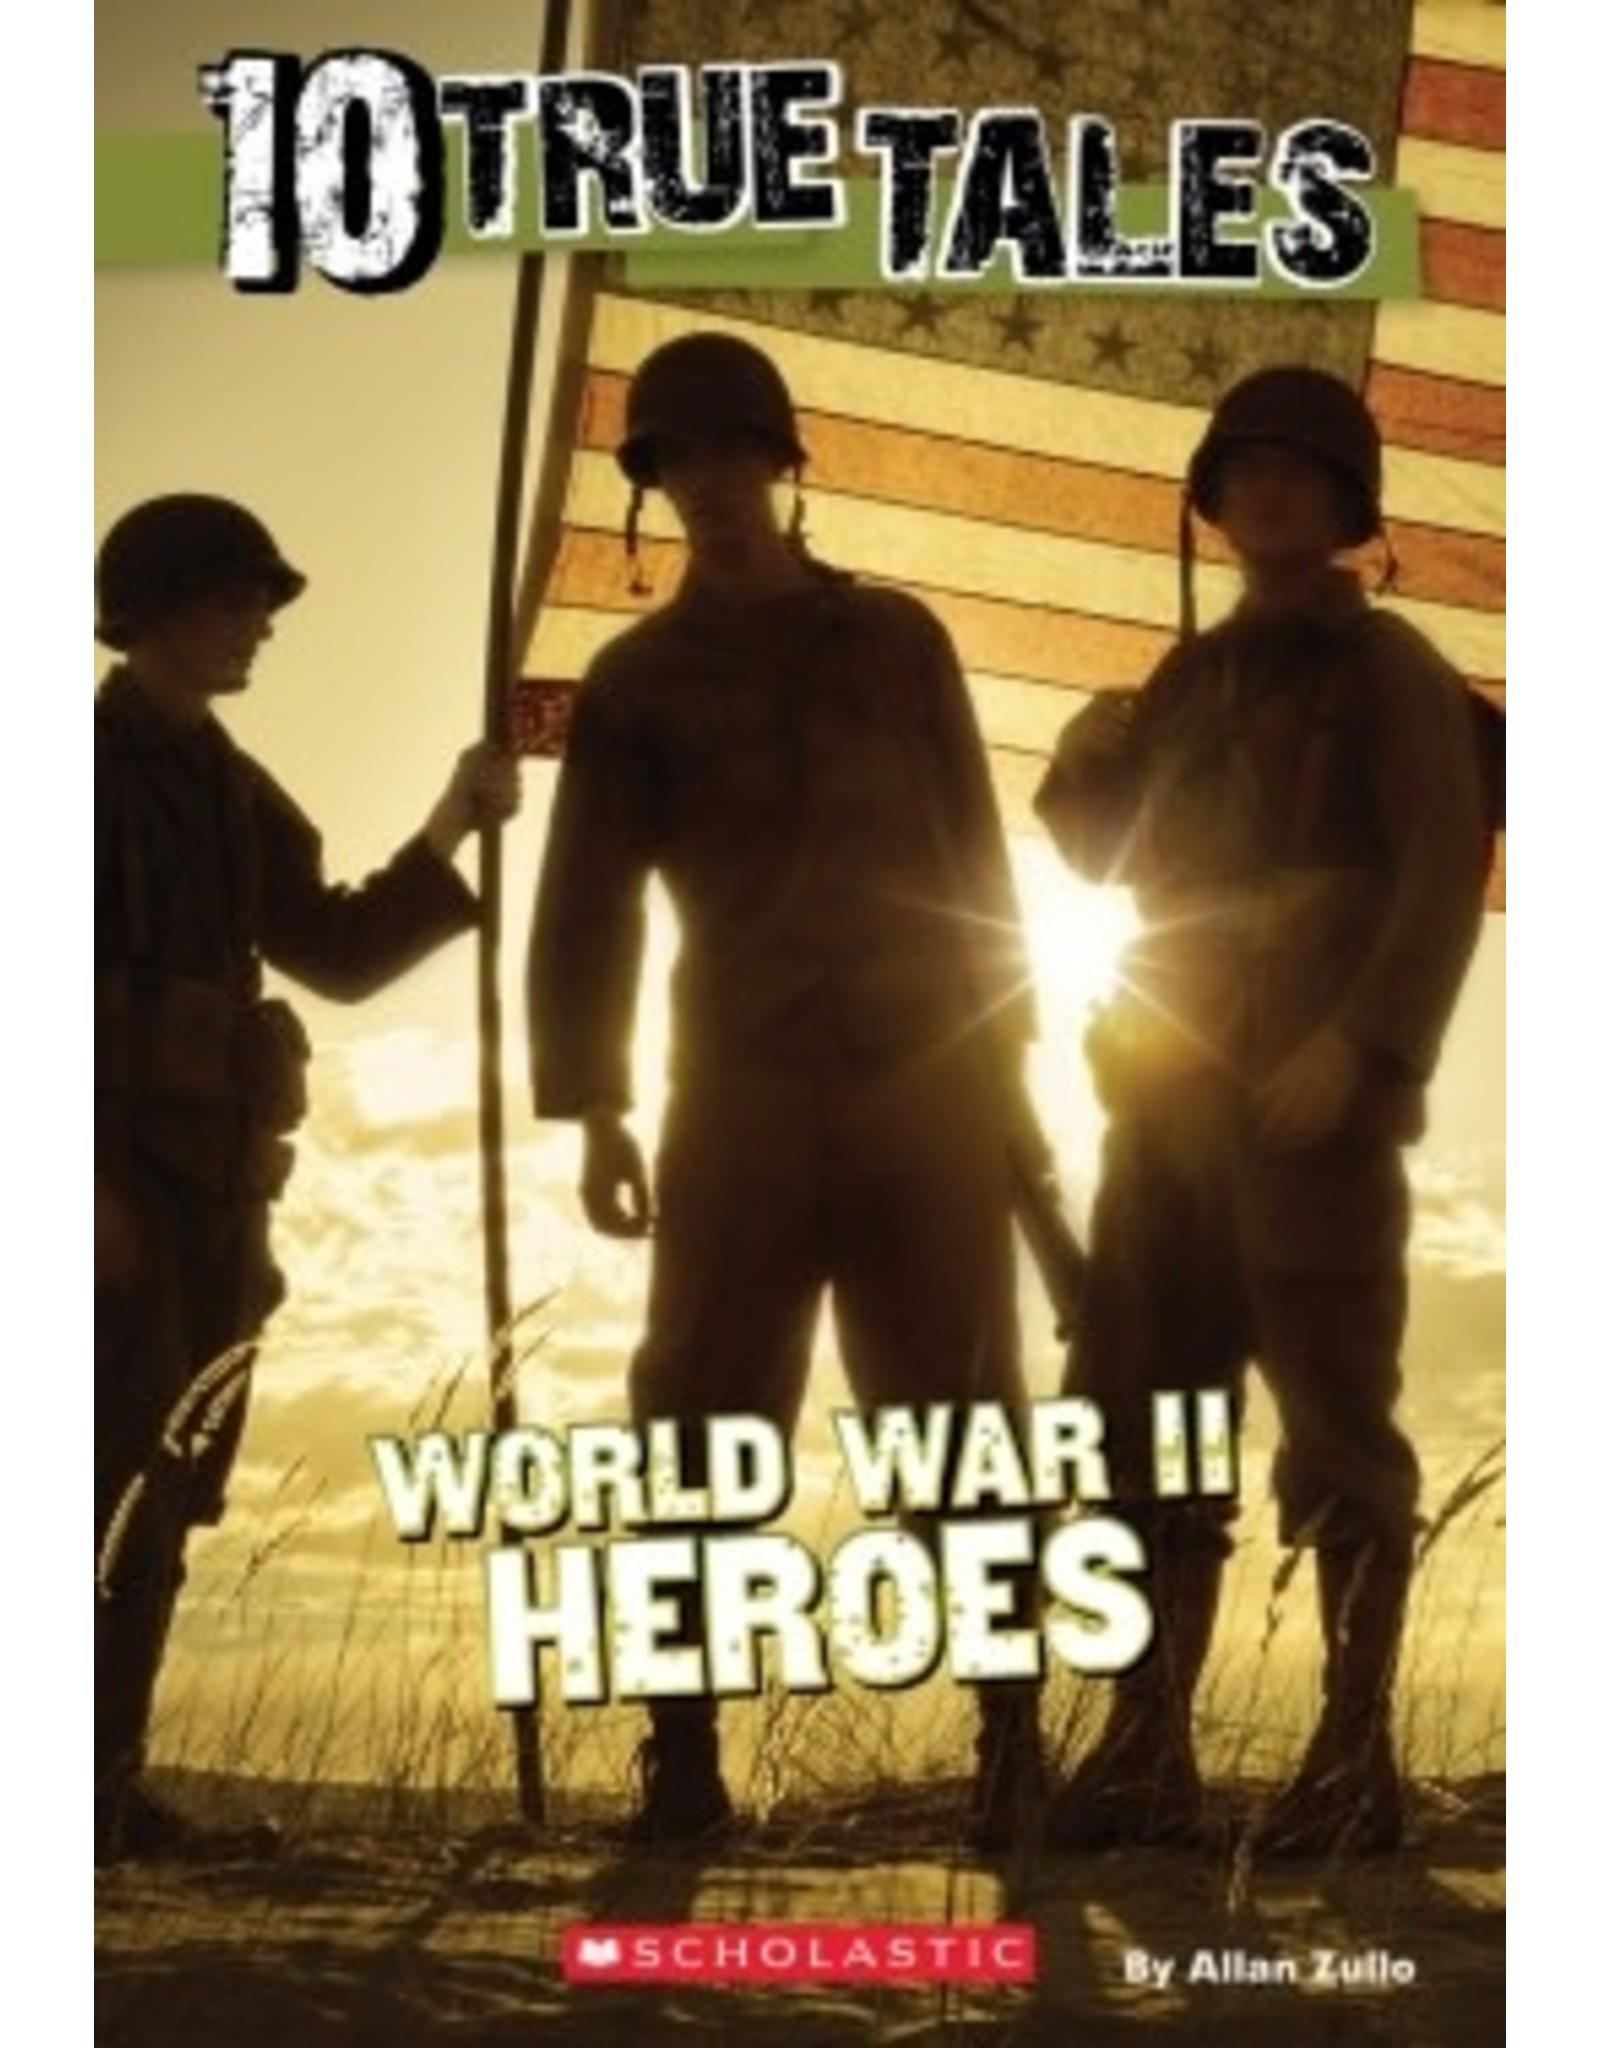 Scholastic 10 True Tales: World War II Heroes